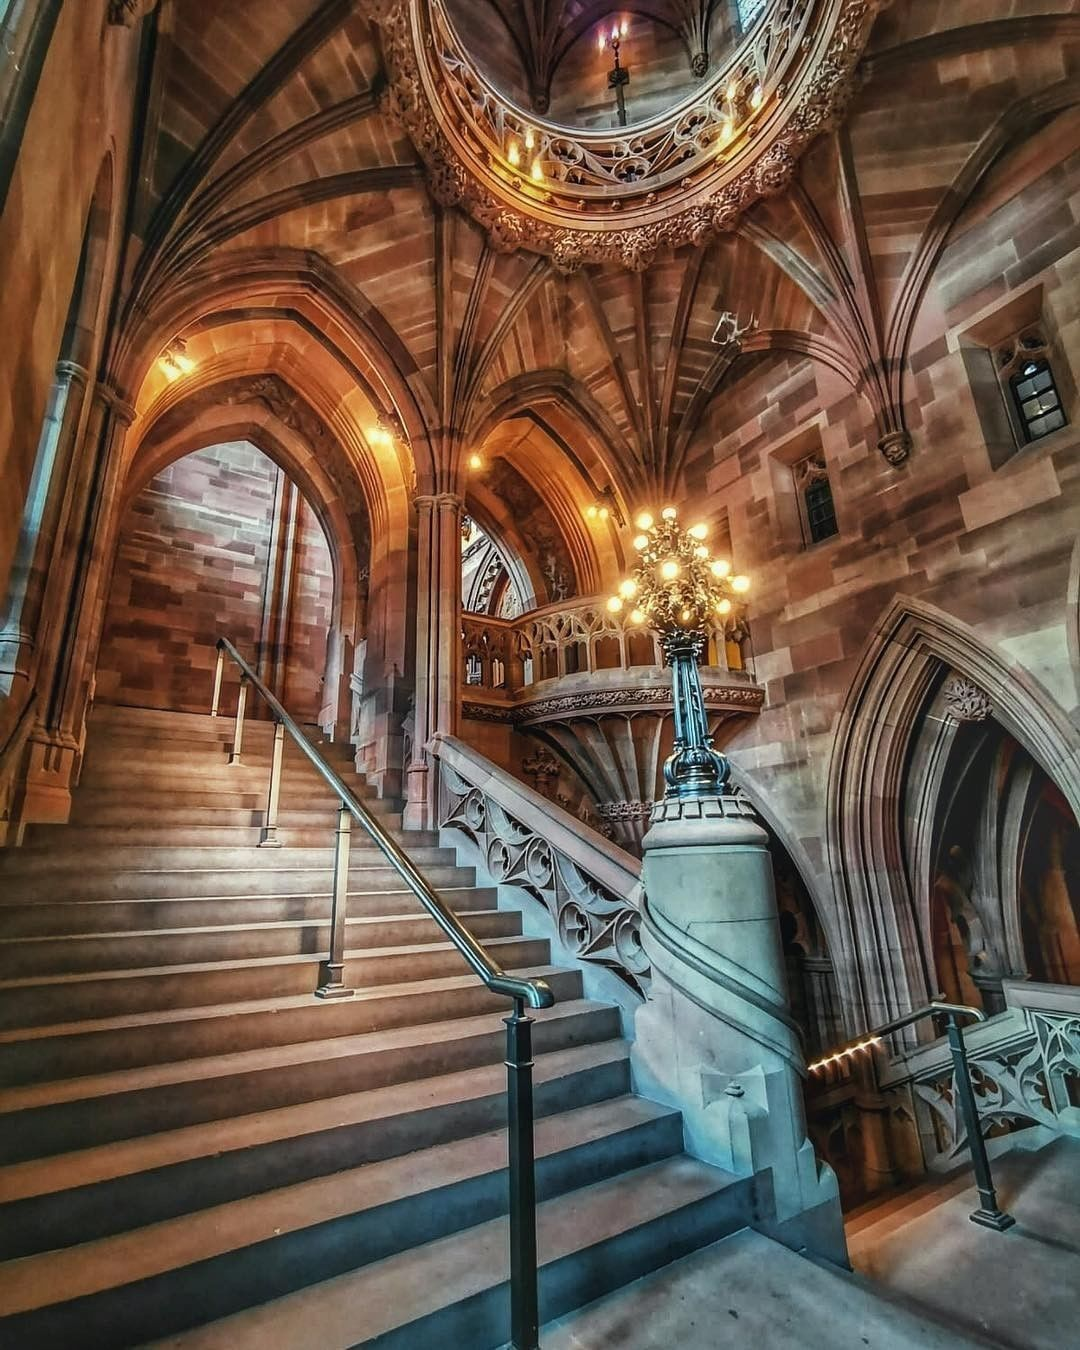 About (The University of Manchester Library)